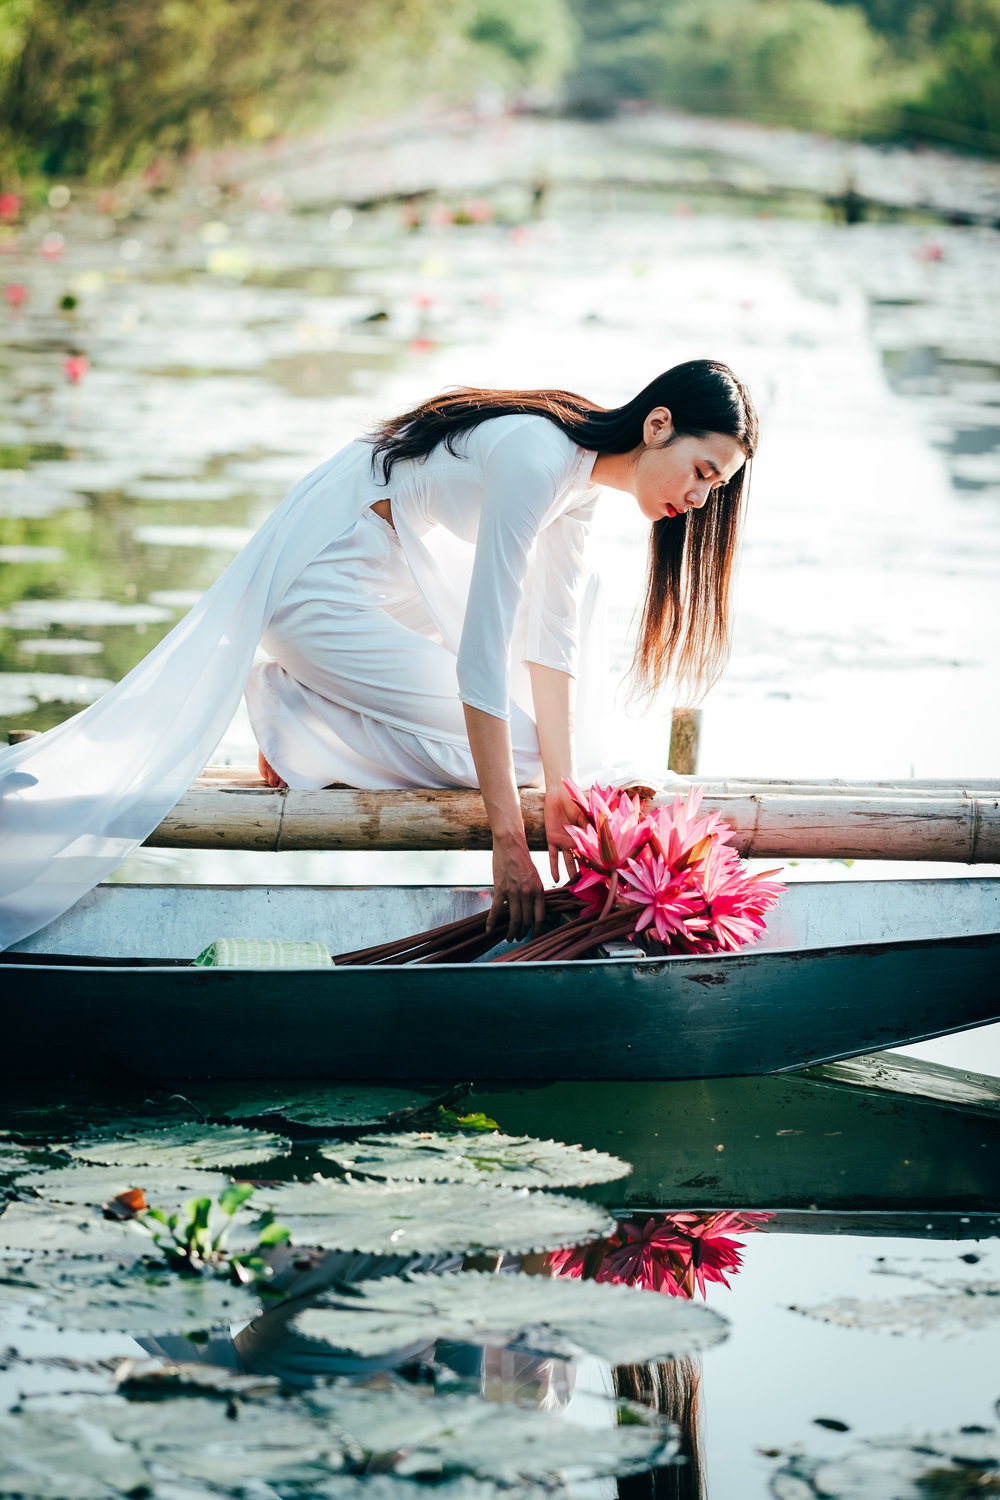 Vietnam model in traditional dress collecting lotus